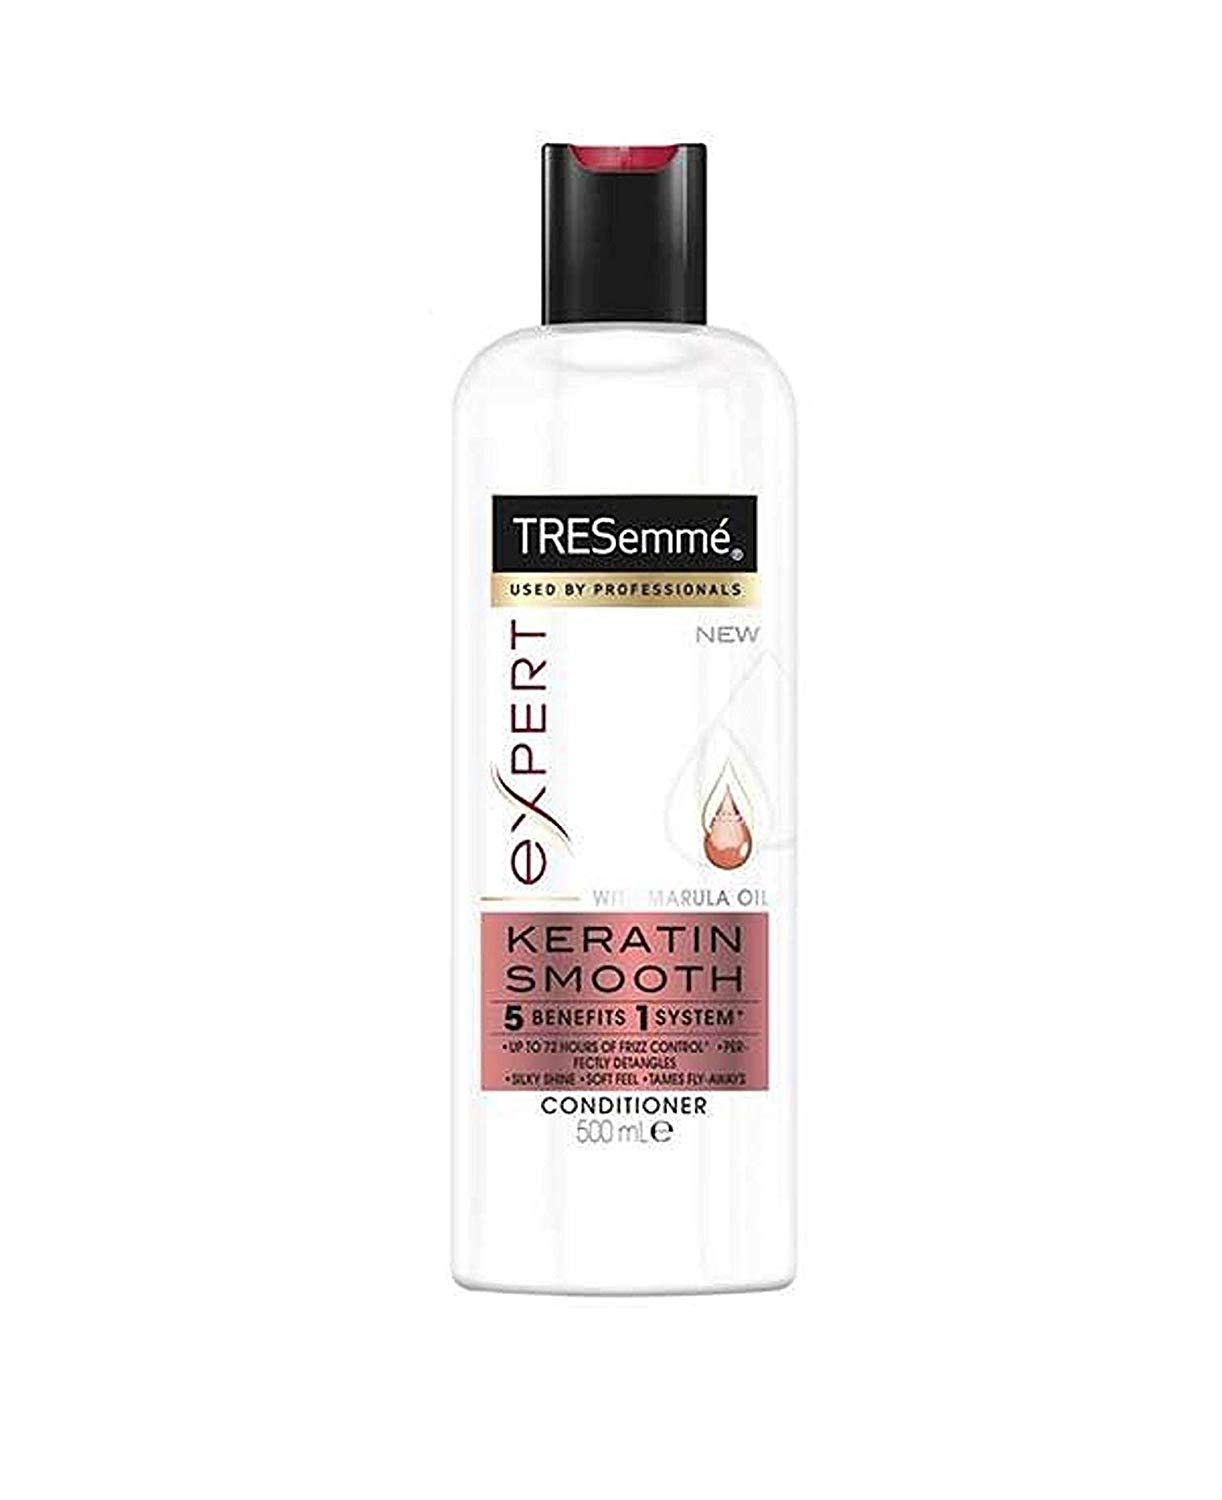 Tresemme Expert Keratin Smooth Colour Conditioner 500 ml